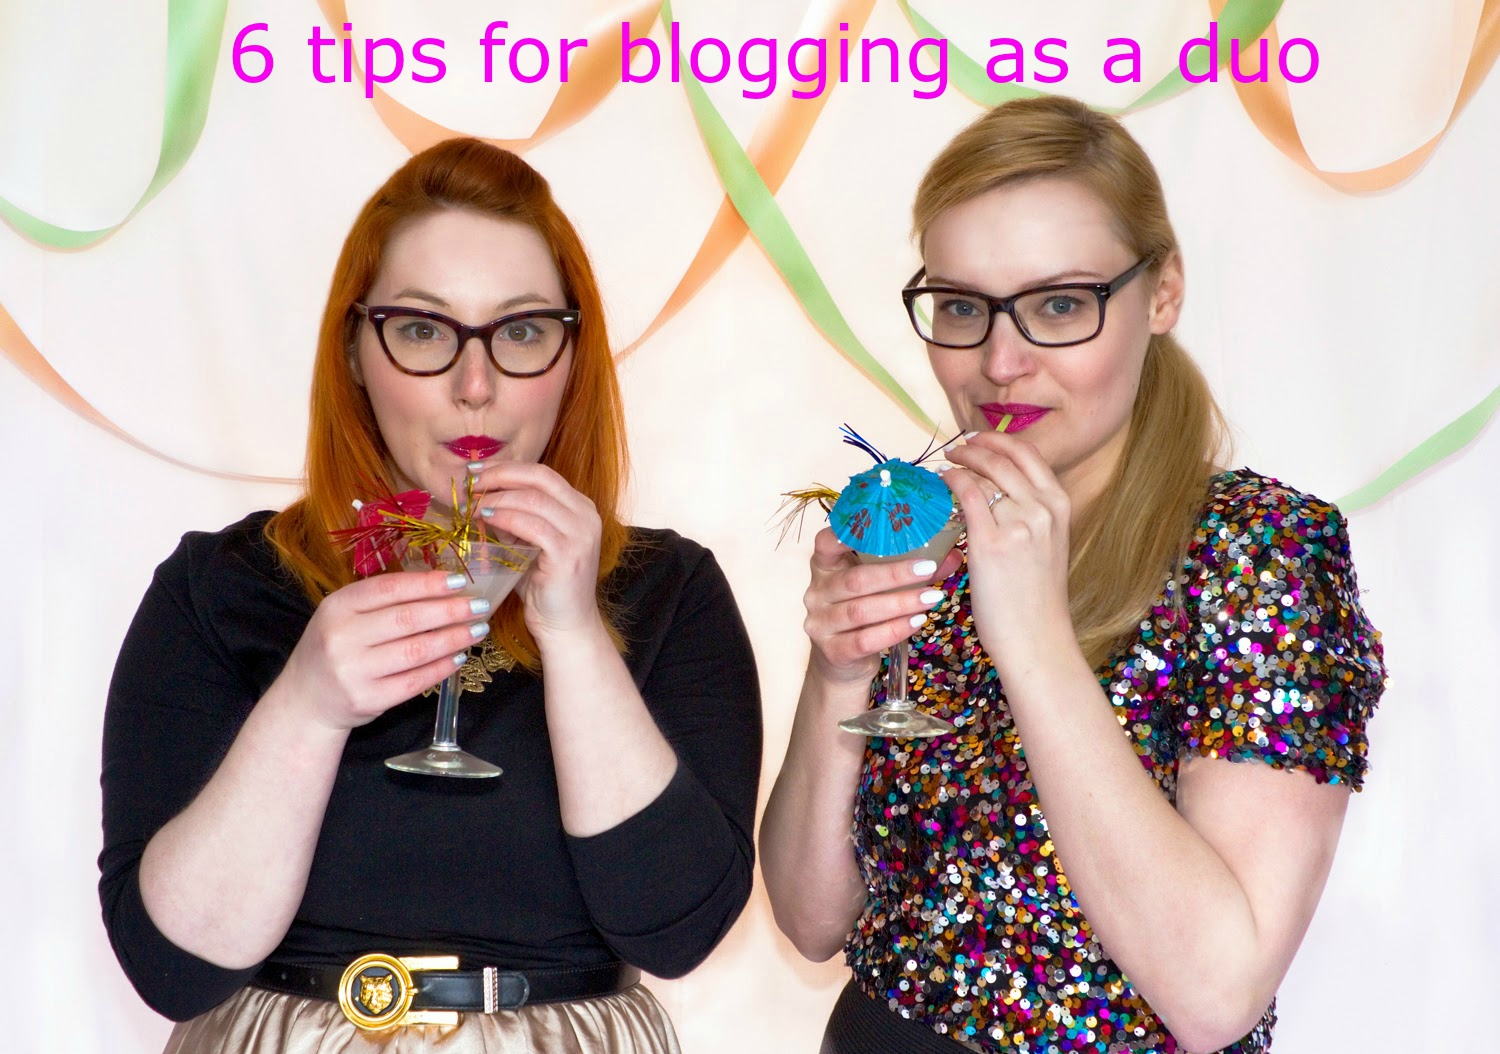 Wardrobe Conversations, blogging duo, blogging tips, award winning, scottish bloggers, cocktails, sequins, party dresses, how to, fashion stylist